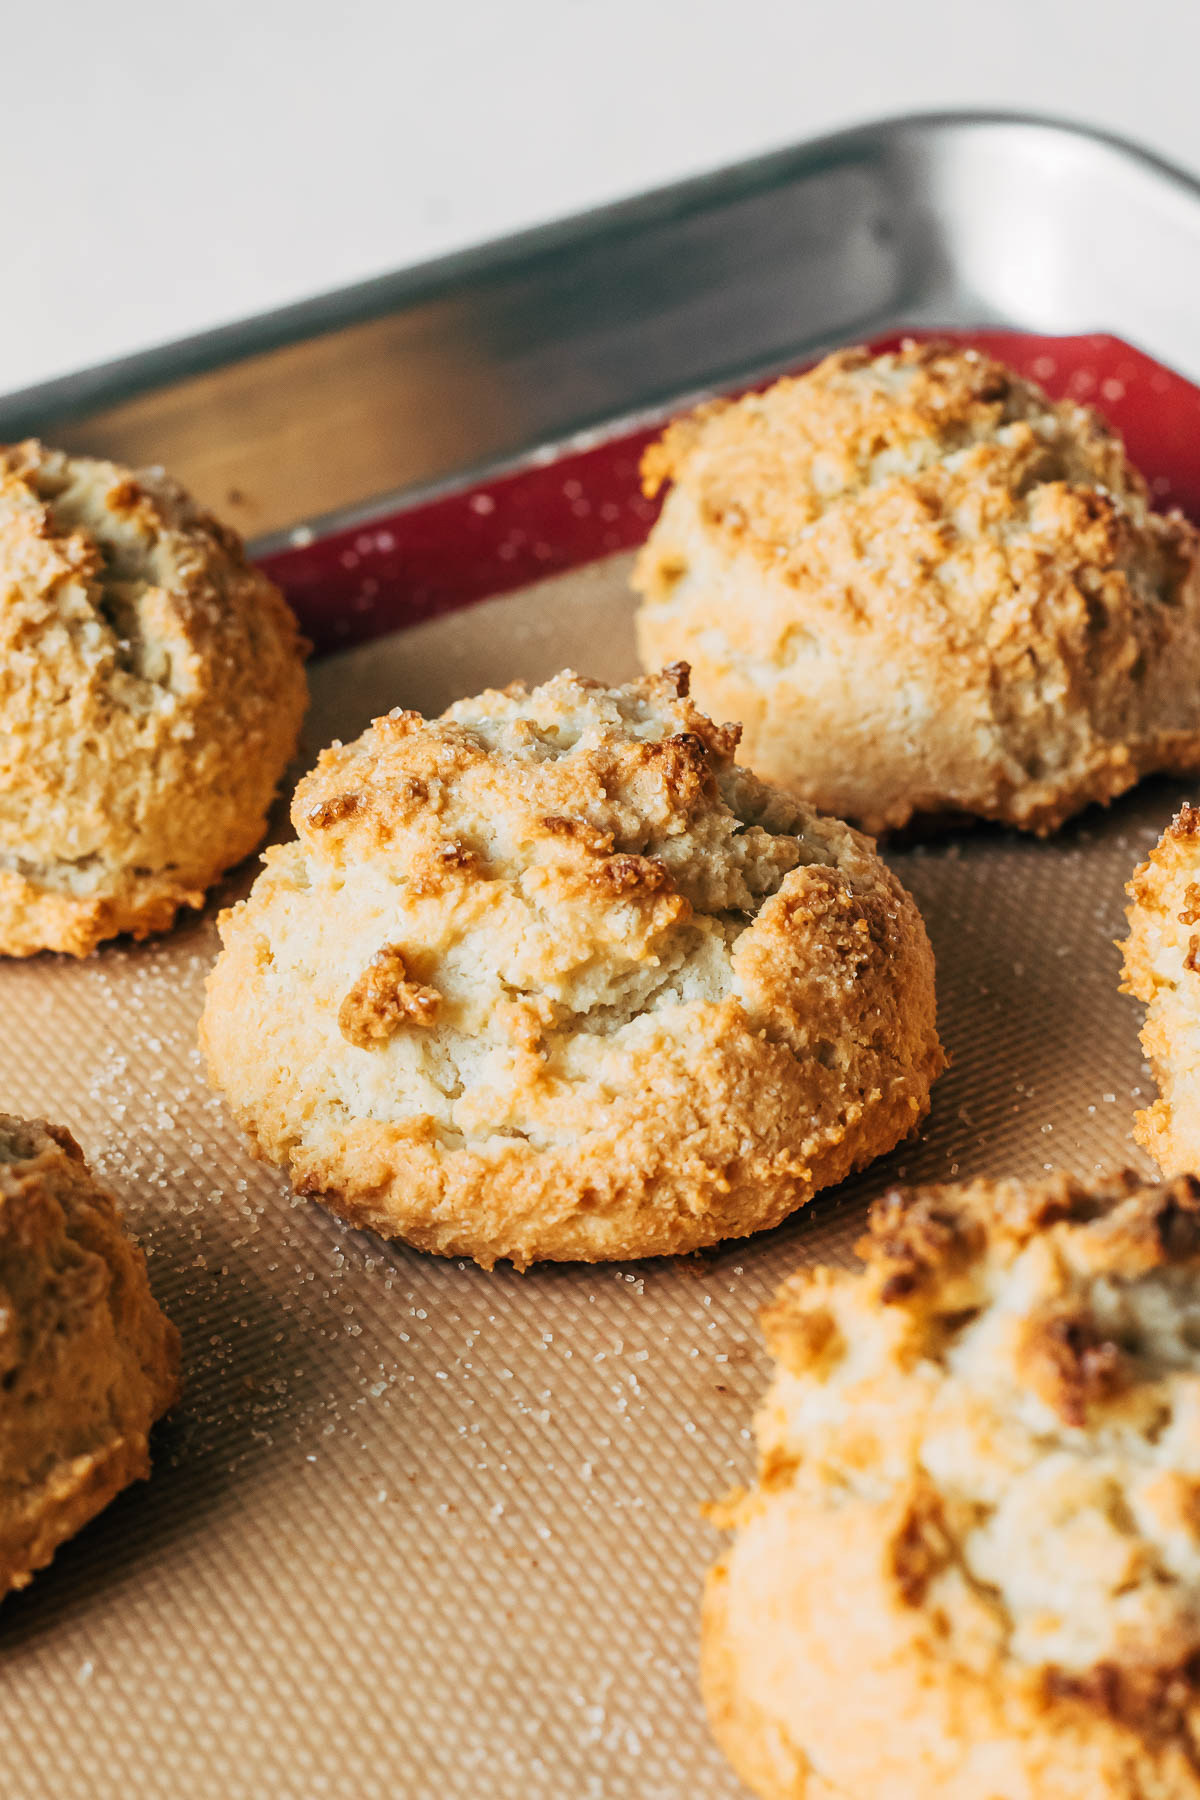 Baked almond flour biscuits on a baking sheet.